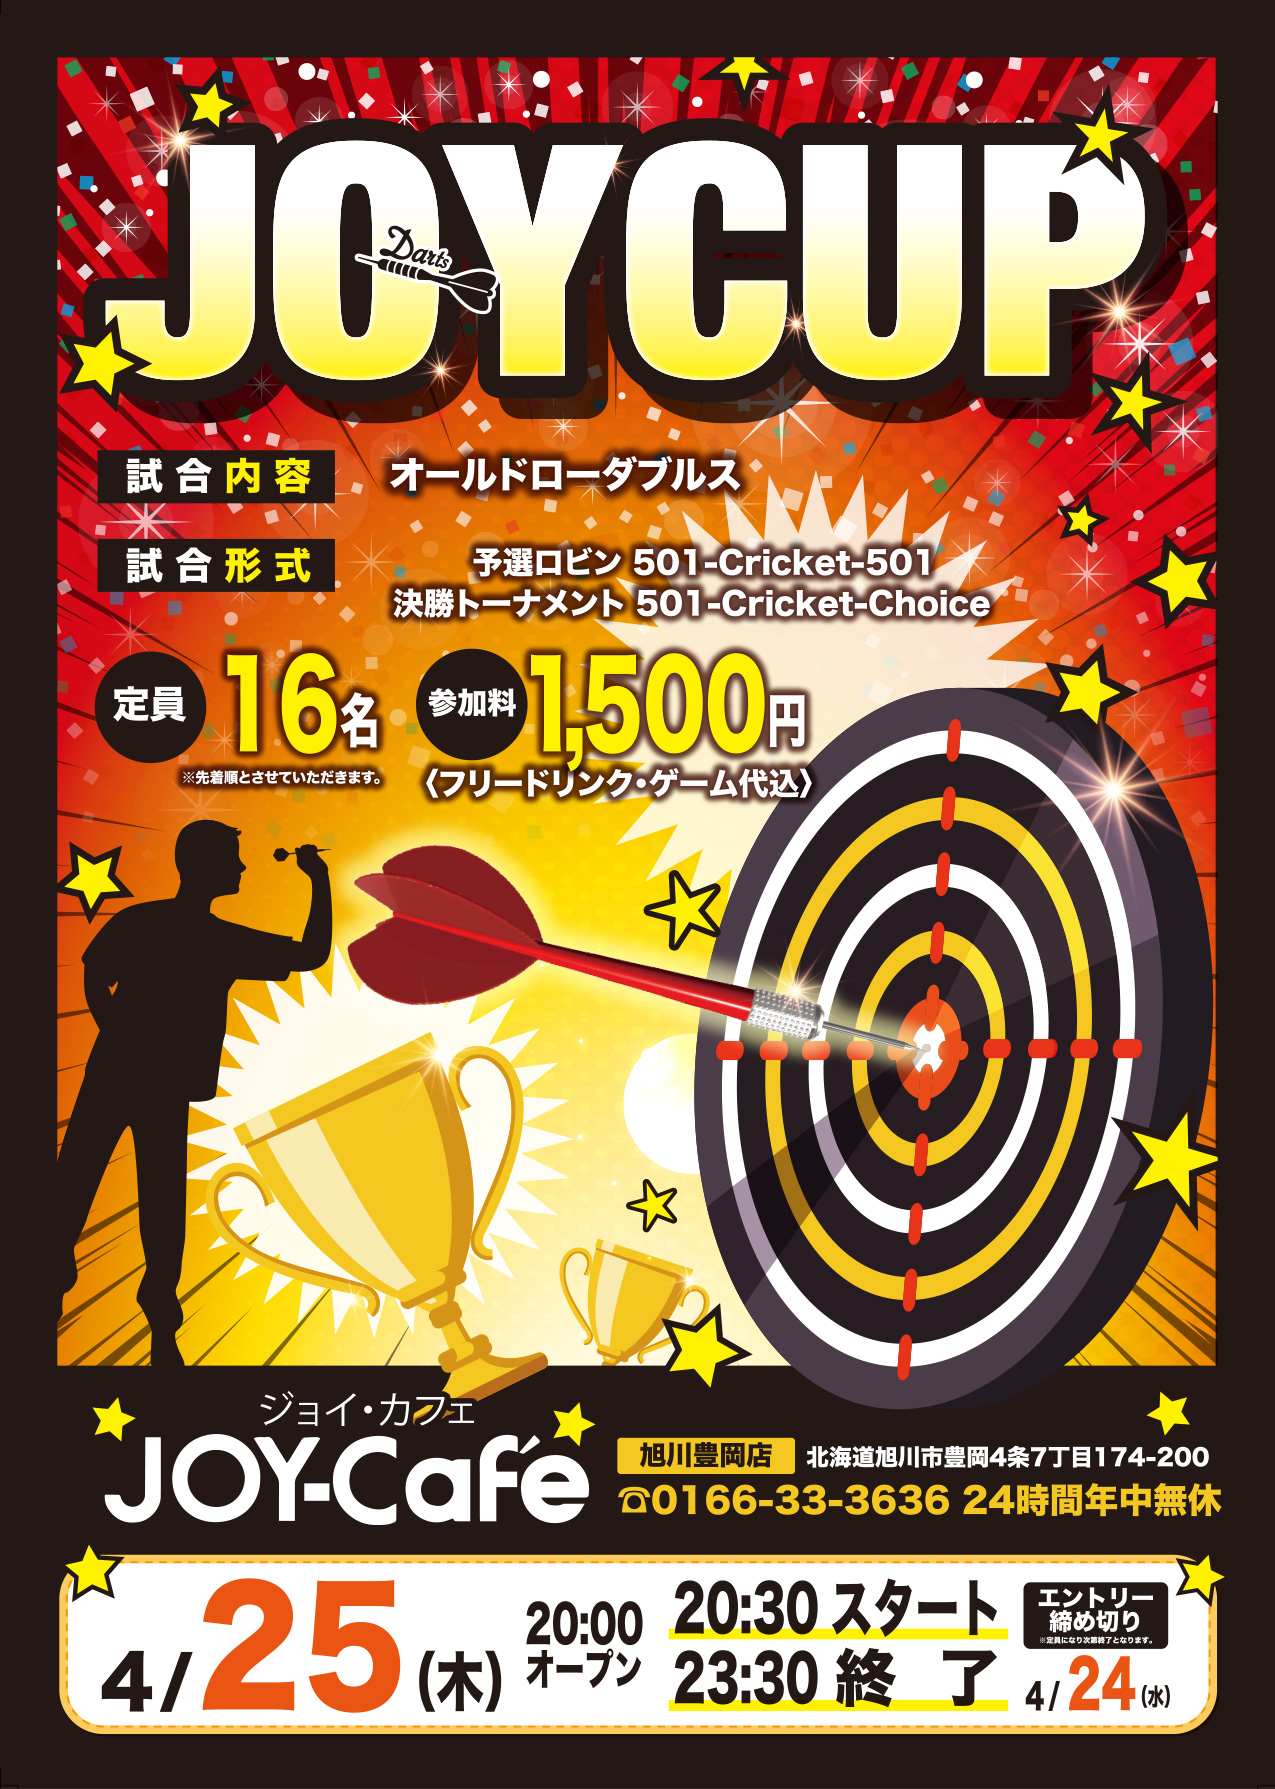 https://www.joy-cafe.jp/toyooka/photo/1904darts.jpg